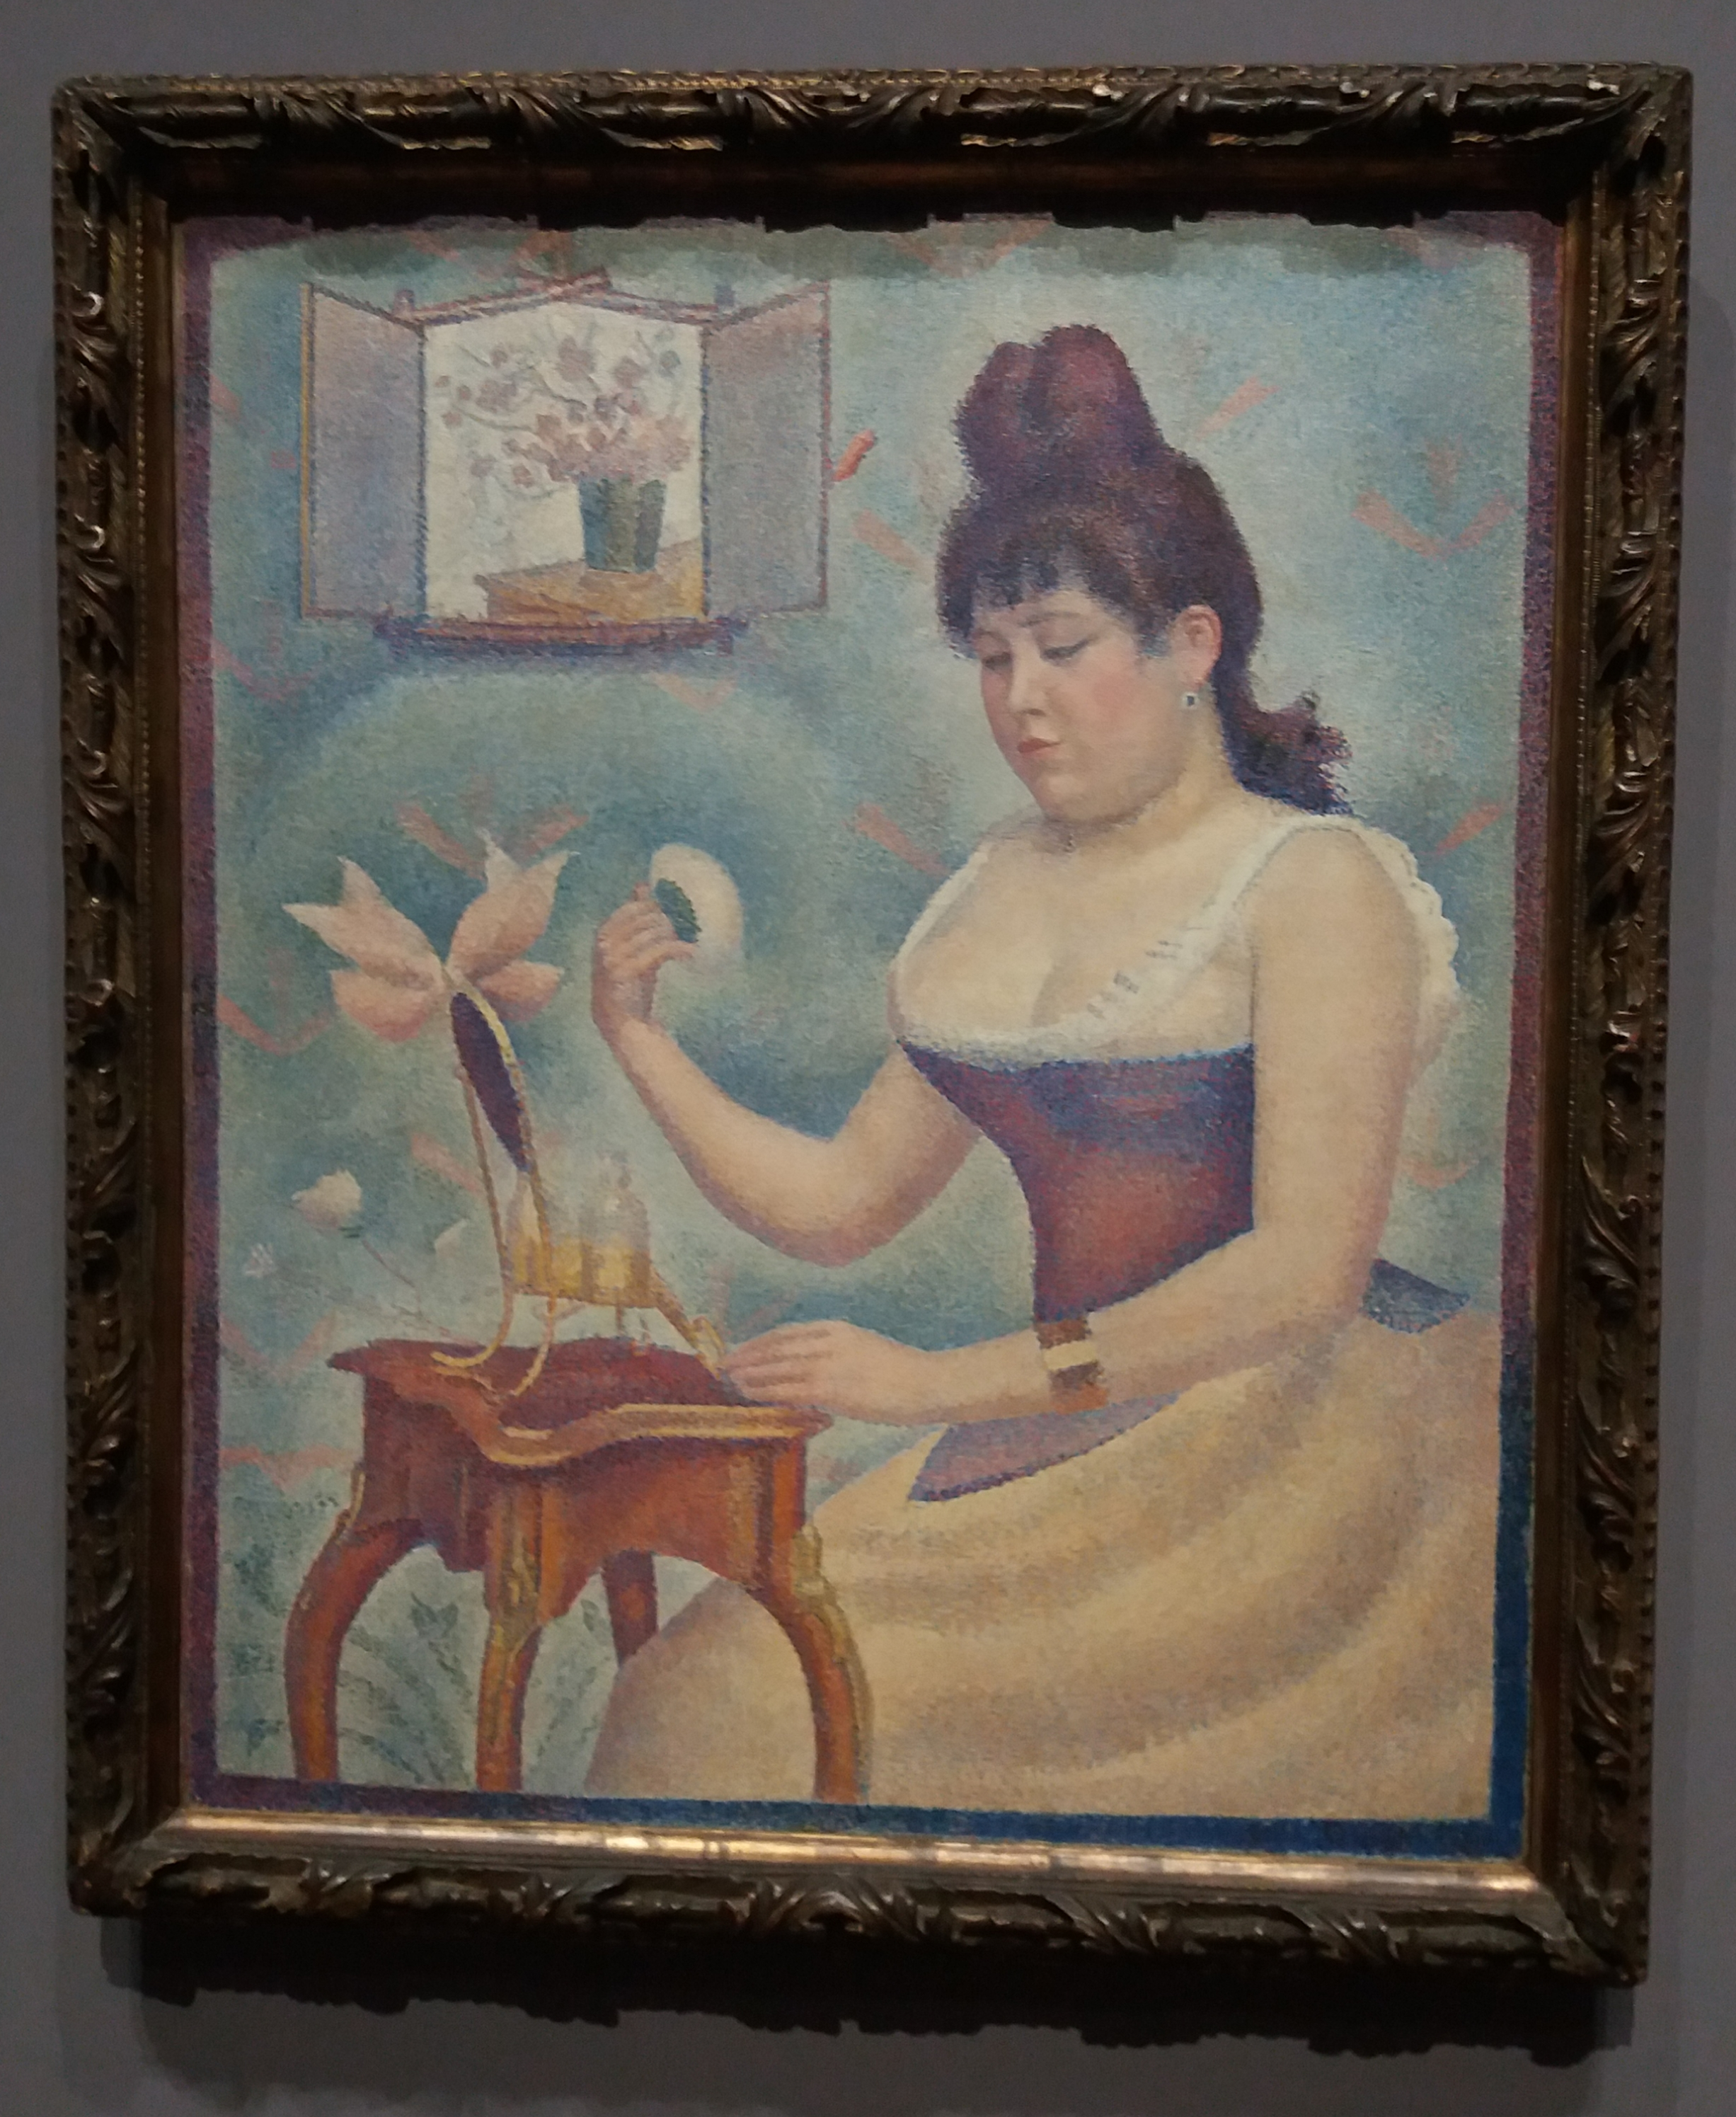 'Woman Powdering Herself', a painting in the pointillist style by Georges Seurat